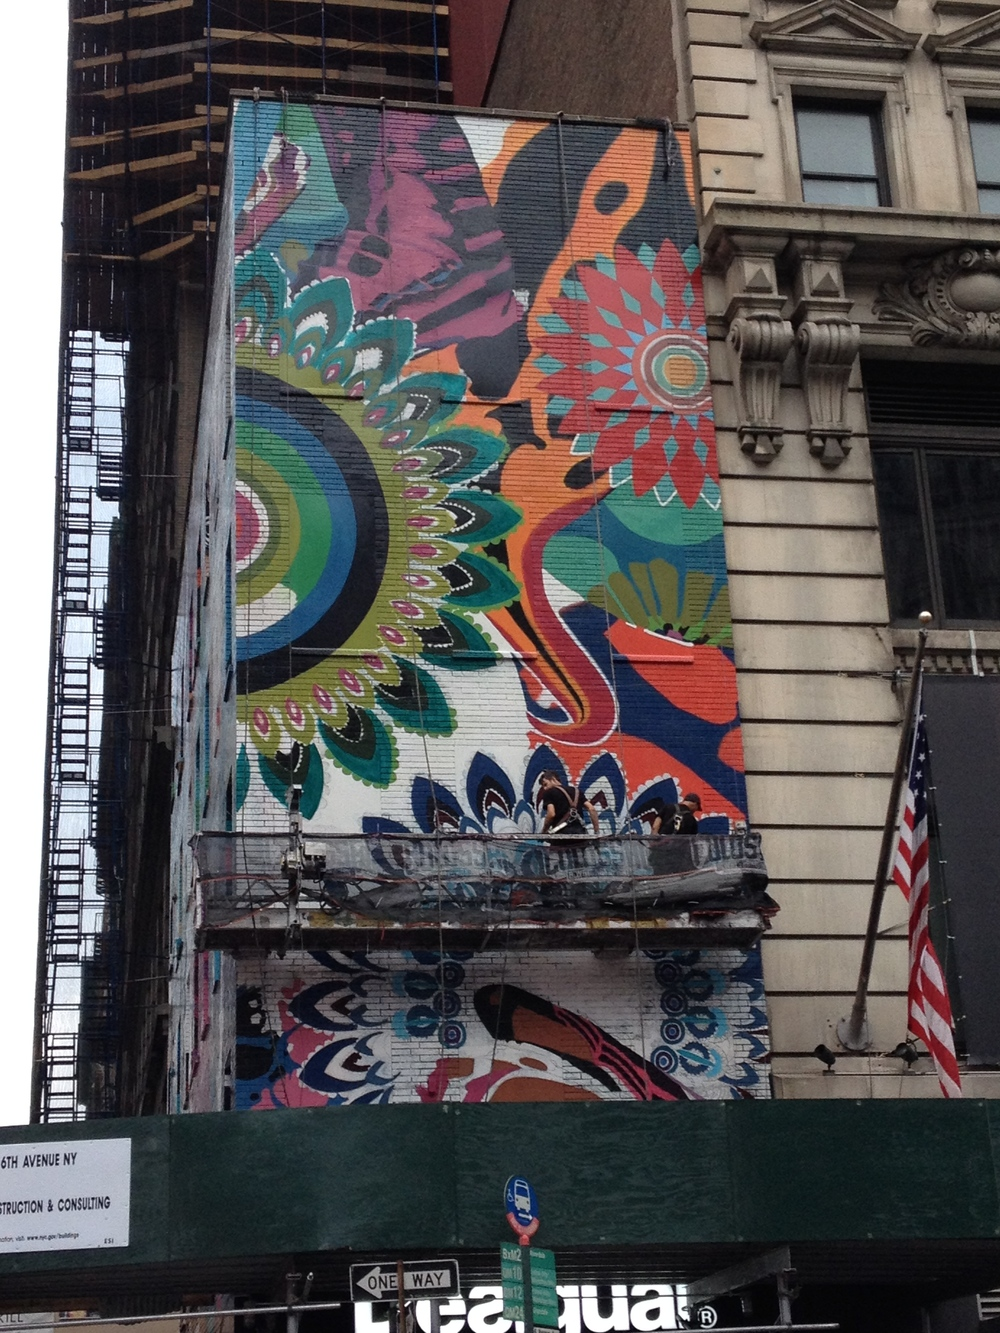 Desigual painting on a corner in Manhattan. Notice the 2 guys on the scaffolding. The art is huge!